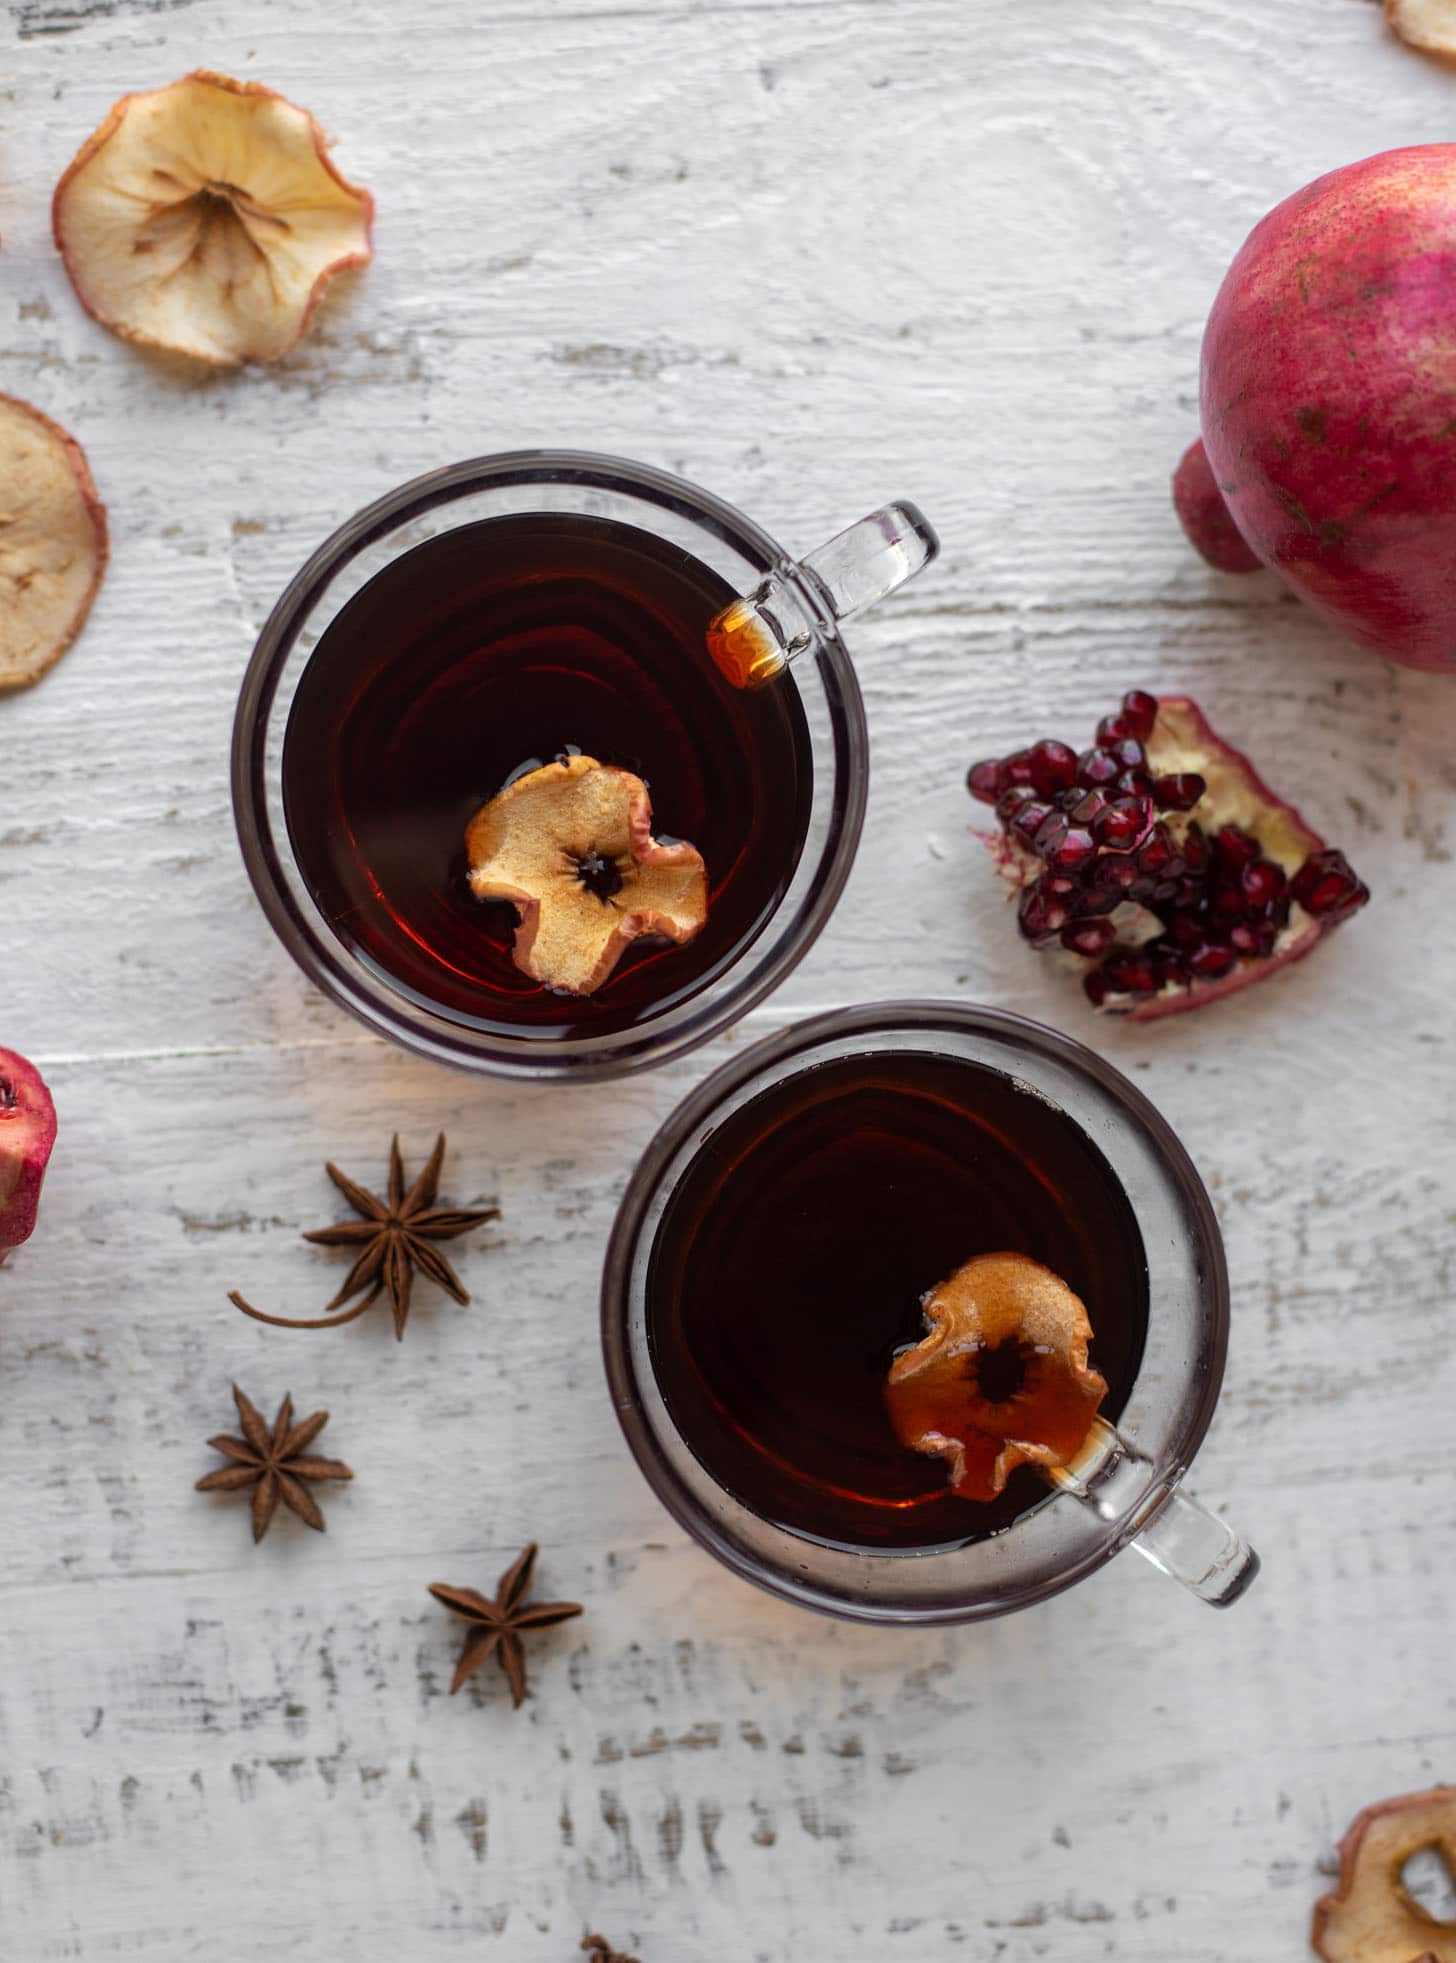 hot pomegranate cider with dried apple slices